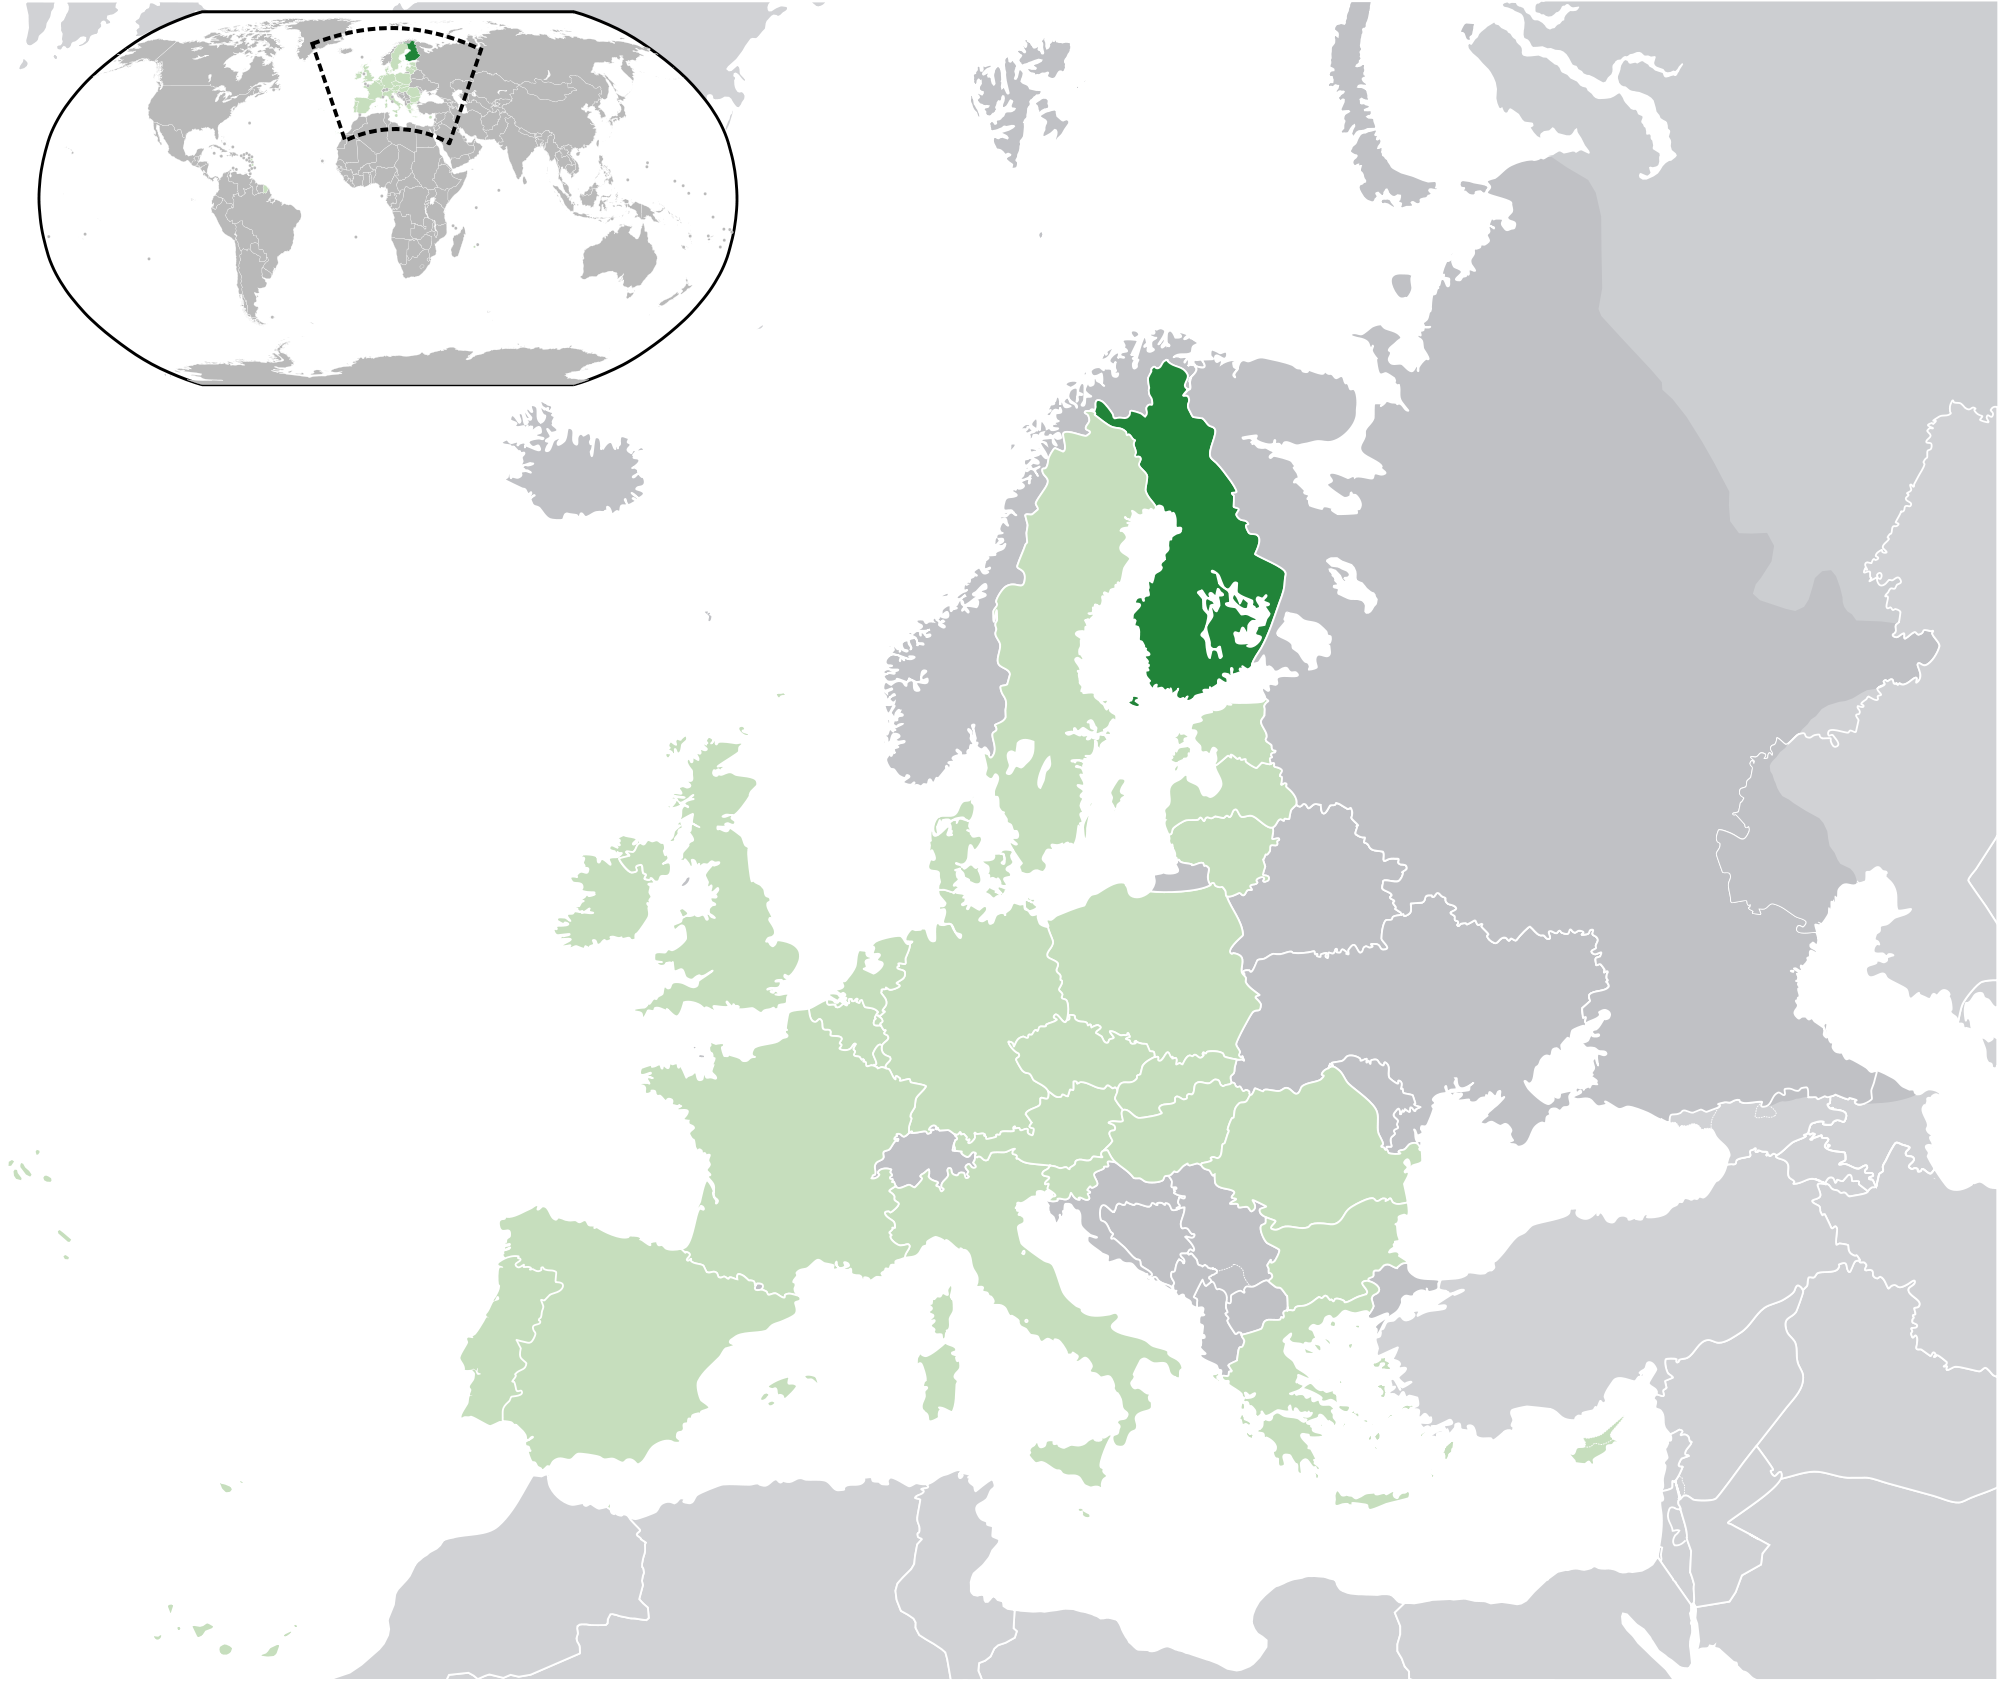 Location of the Finland in the World Map